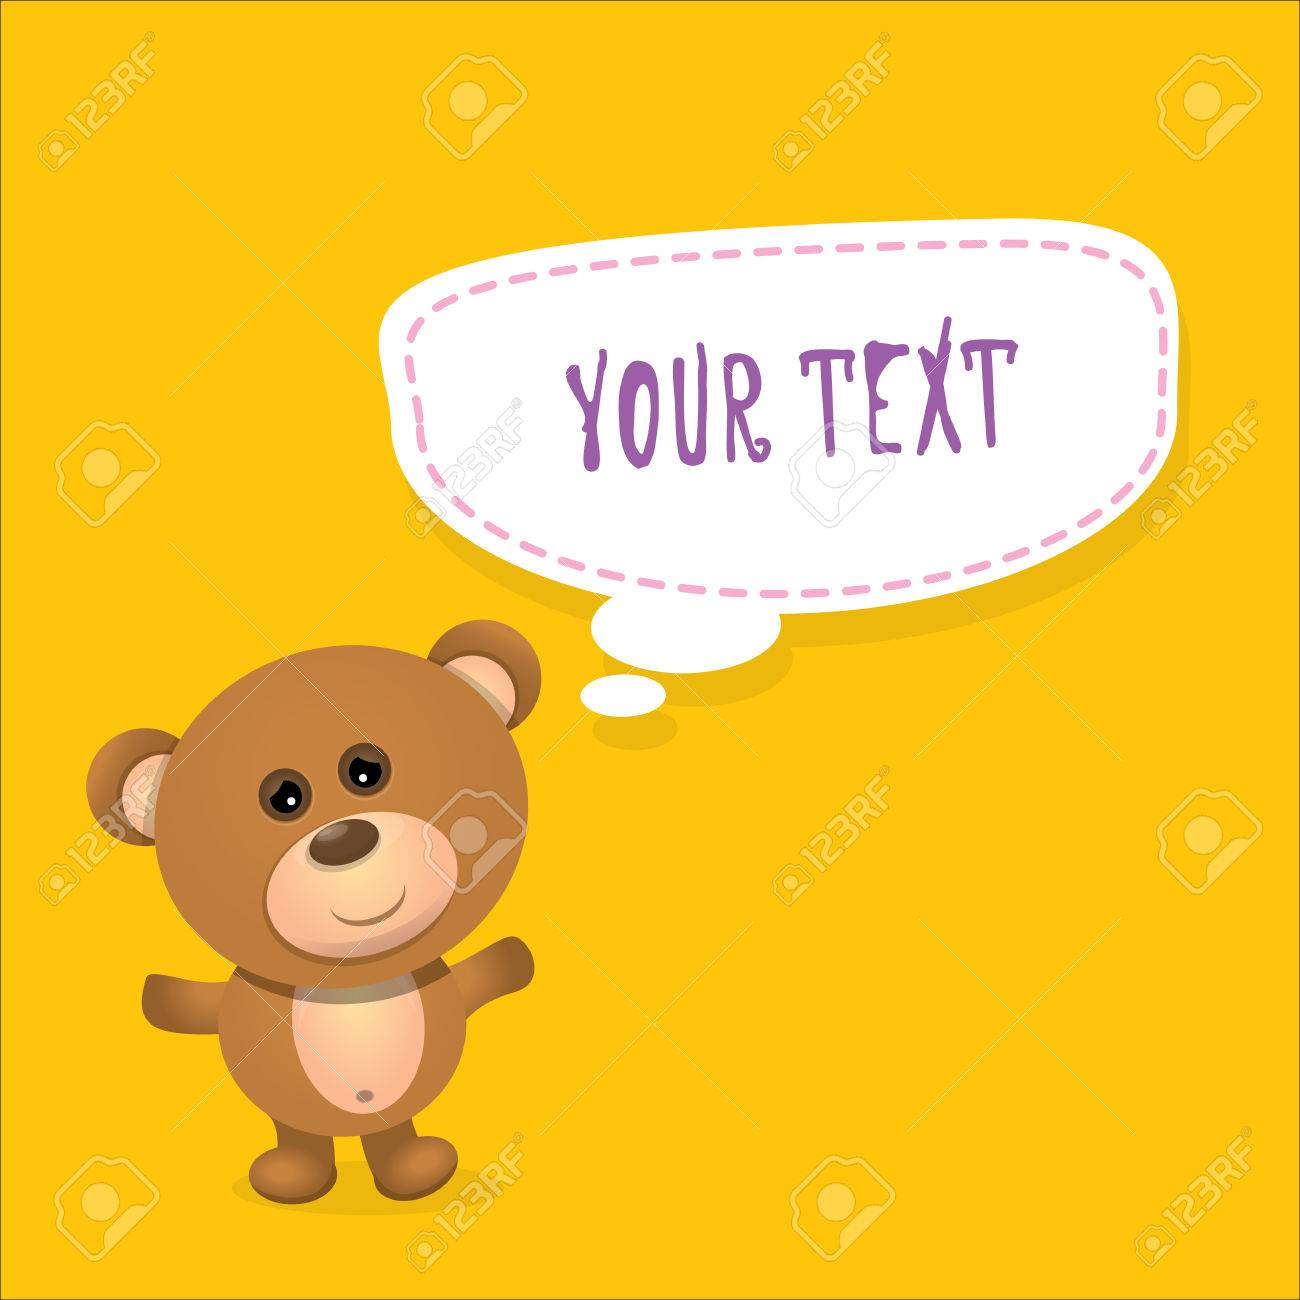 Vector Teddy Bear With Speech Bubble For Text Funny Kids Background